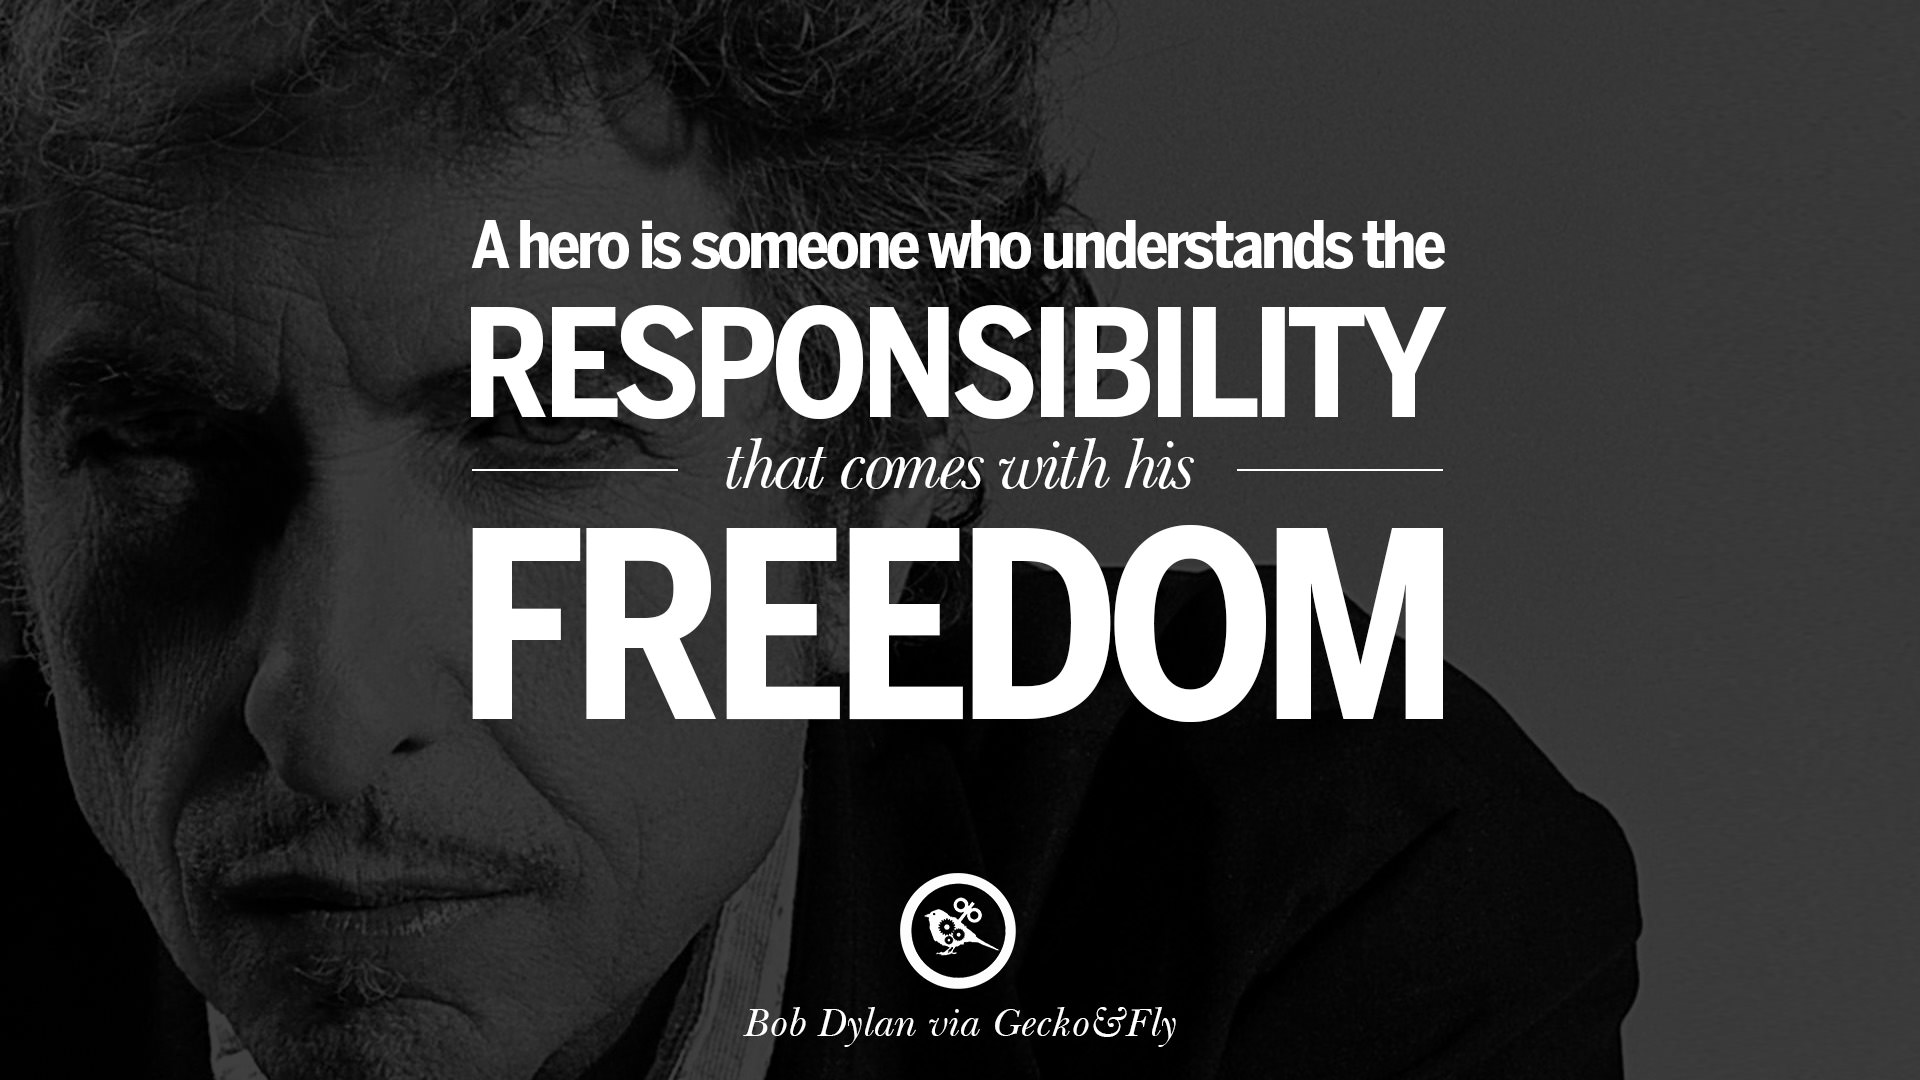 27 Inspirational Bob Dylan Quotes On Freedom, Love Via His Lyrics And Songs